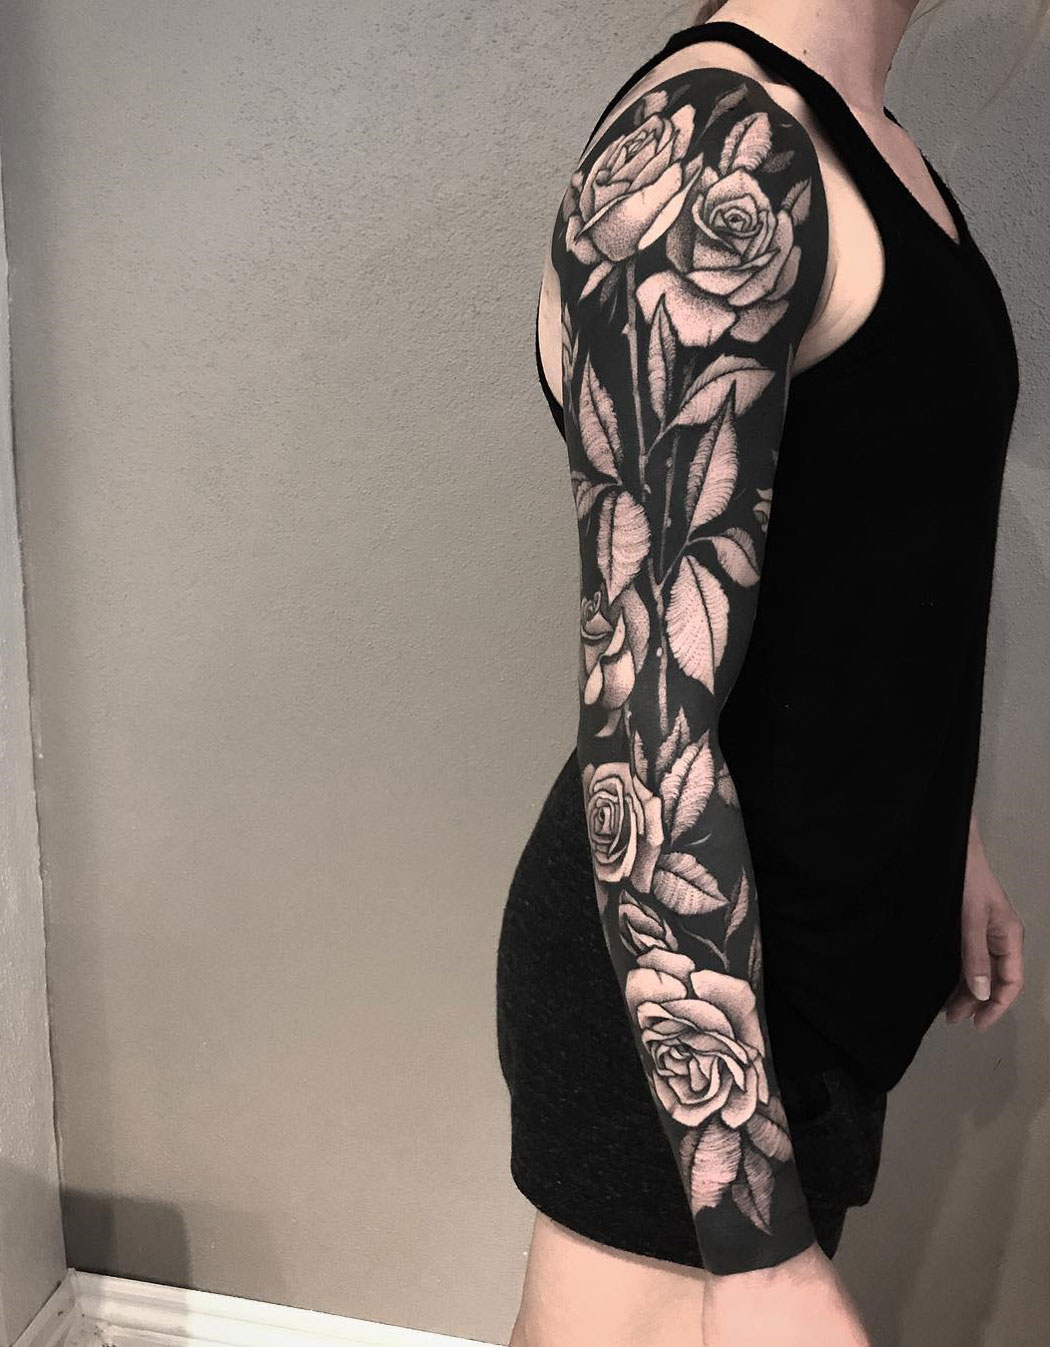 Black Ink Sleeve with Roses